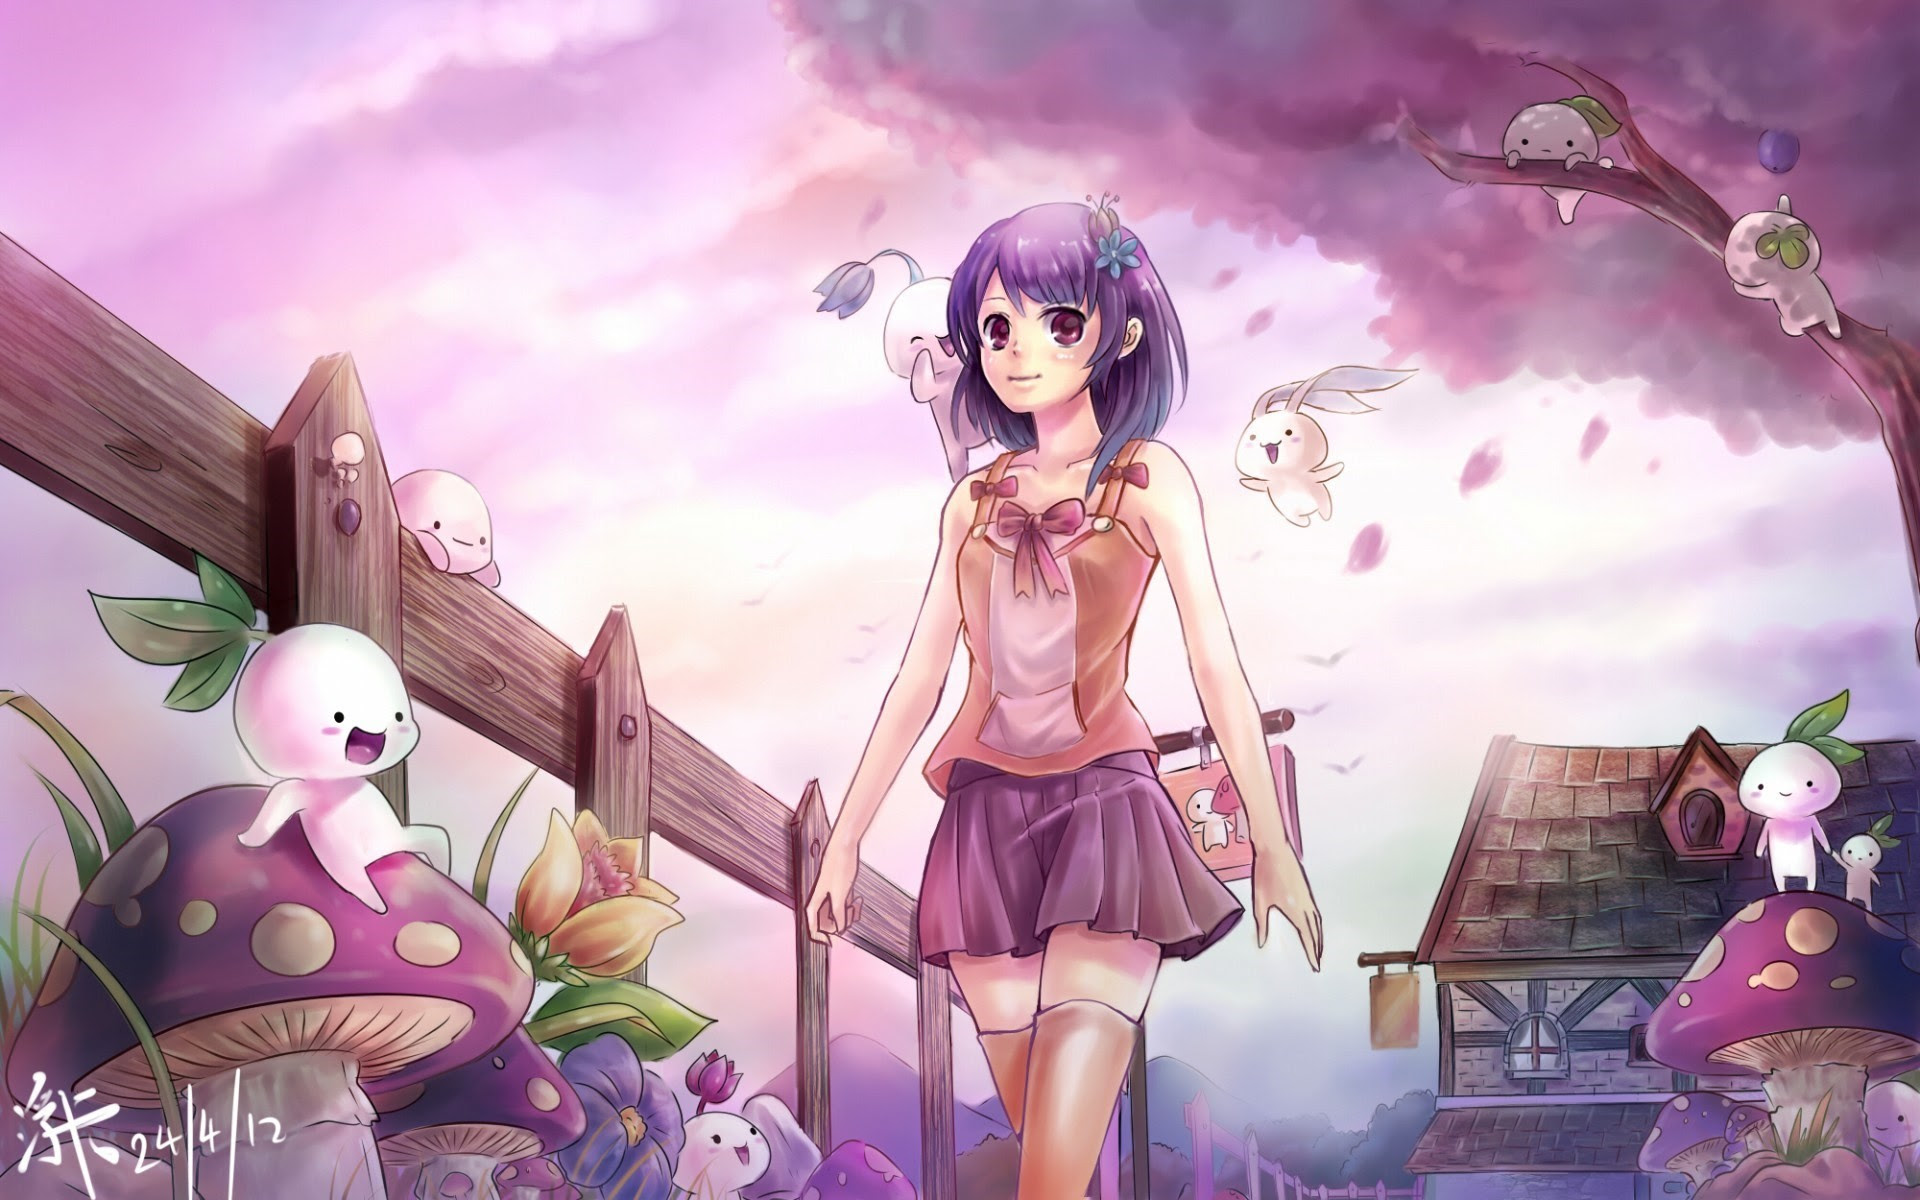 Cute Anime Wallpapers for Desktop (59+ images)